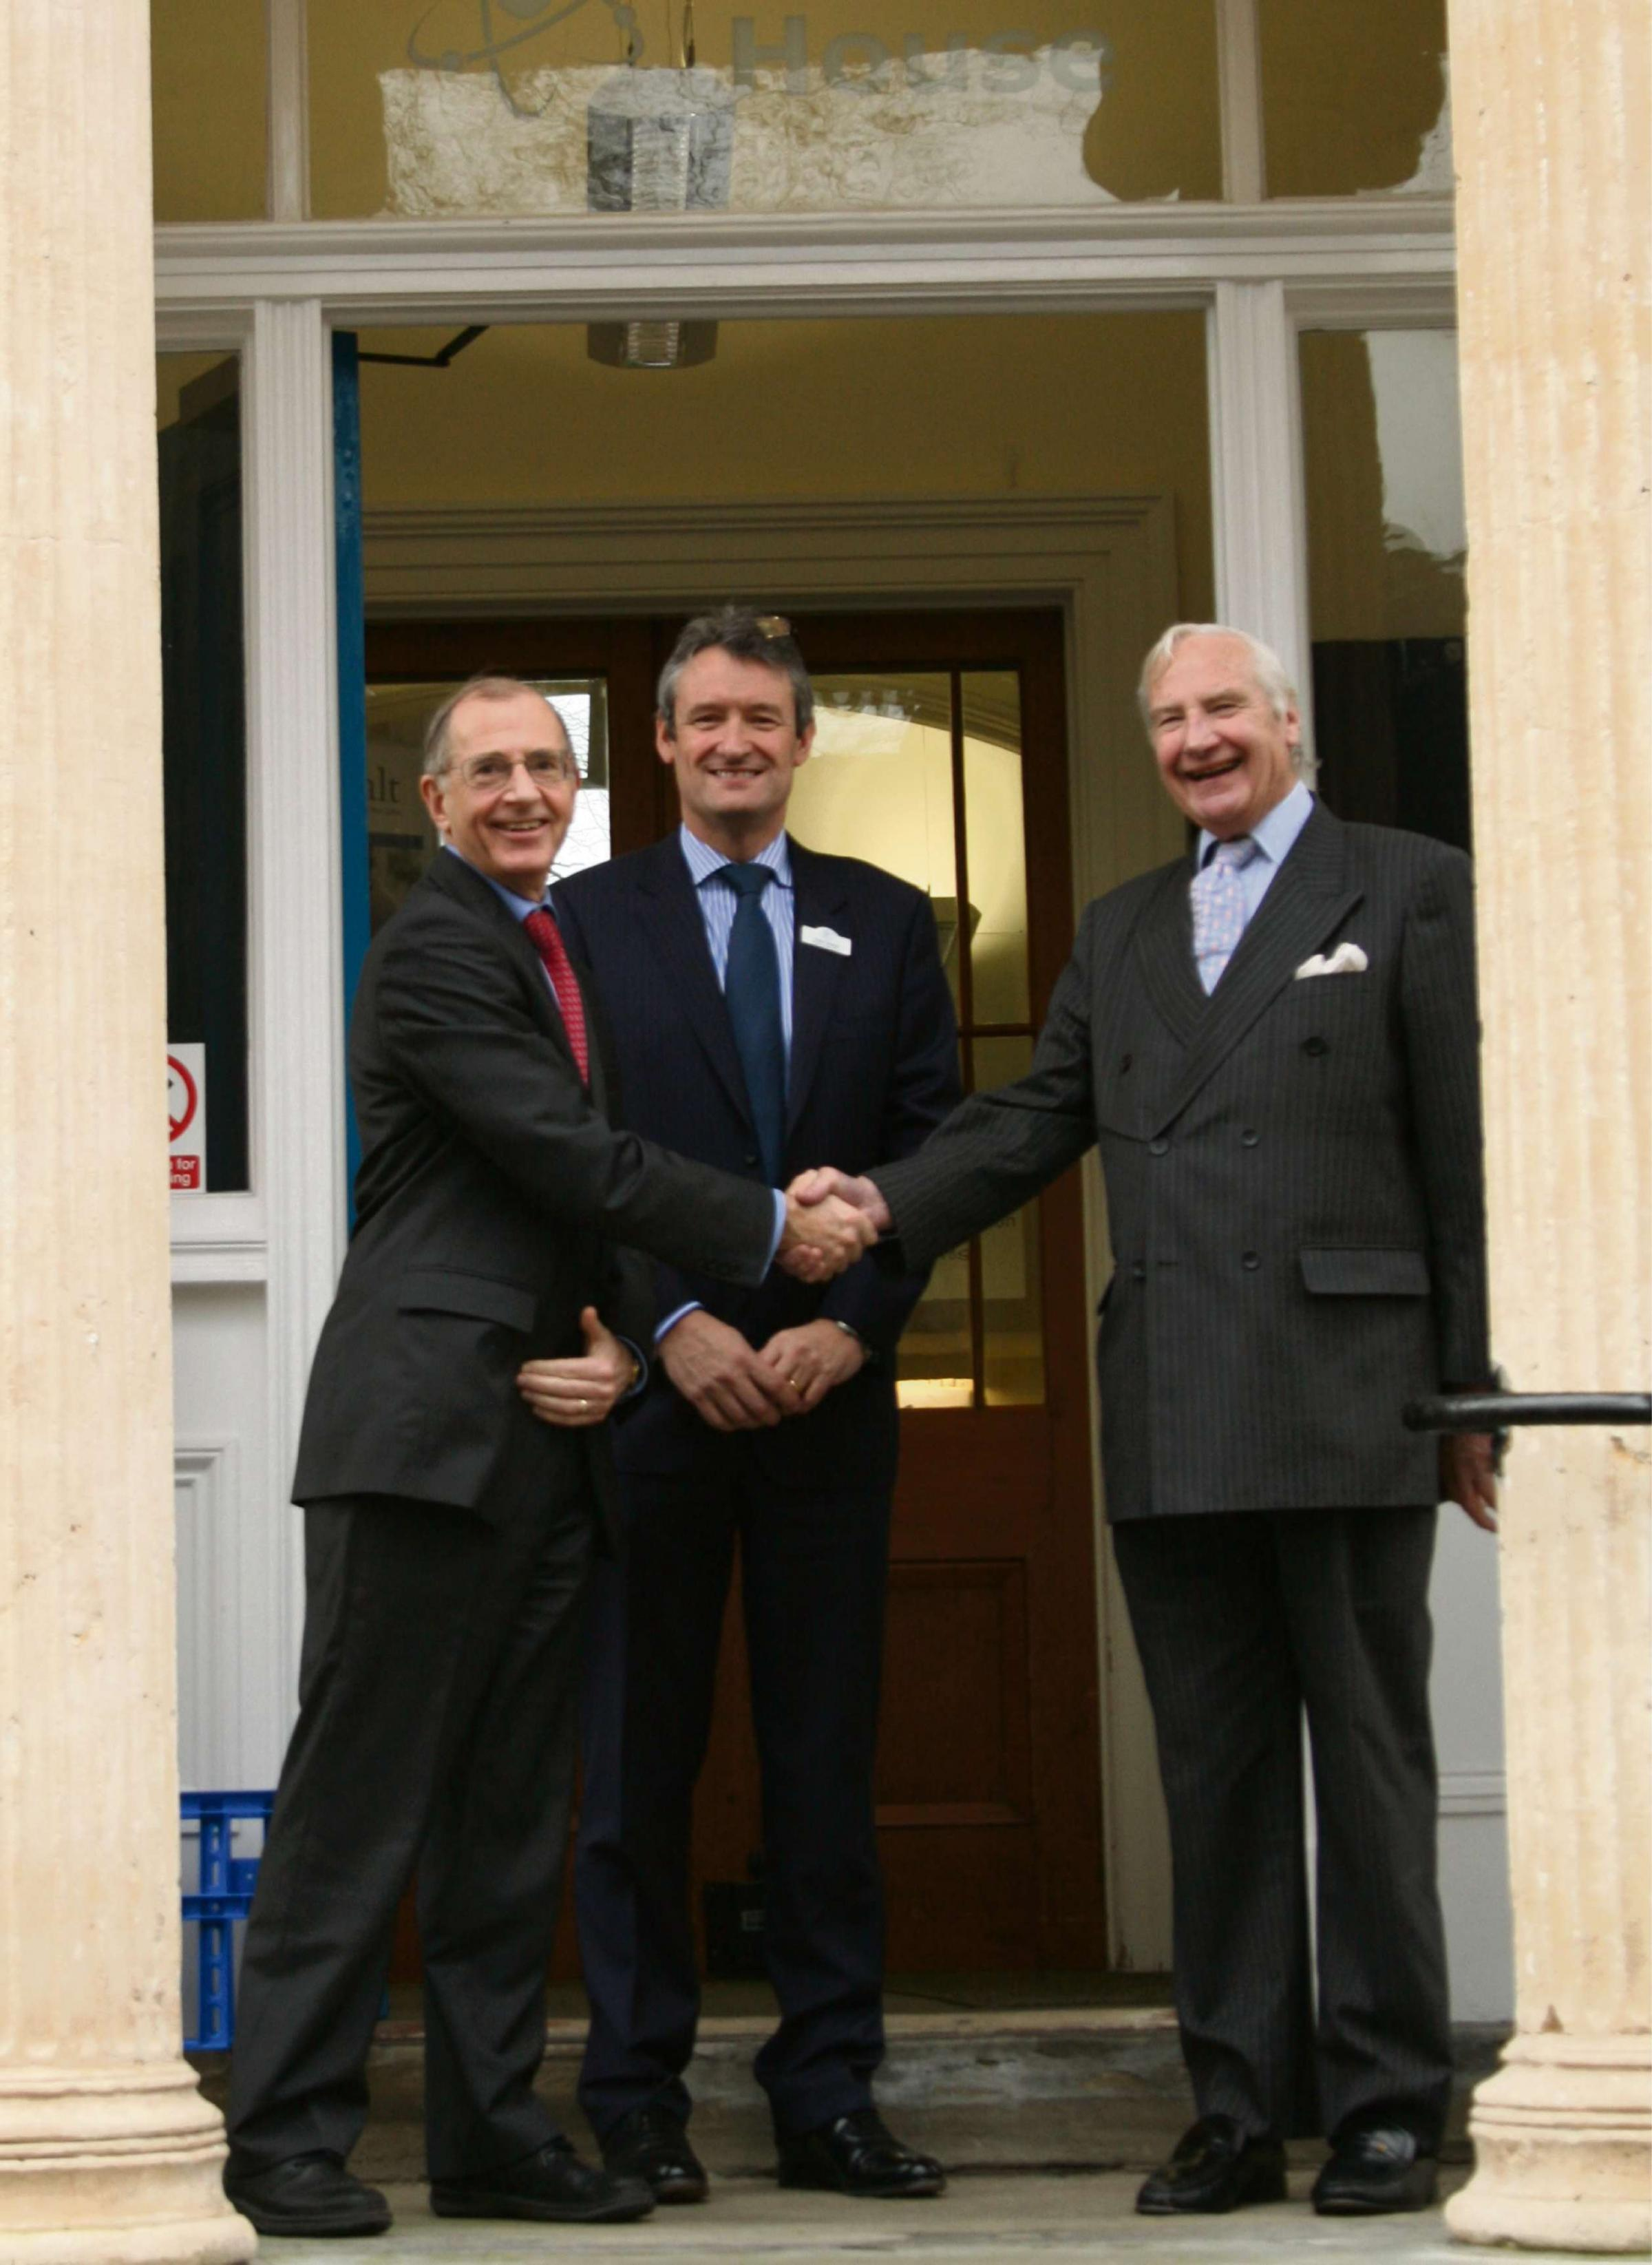 From left to right, new Cobalt chairman Peter Warry, chief executive Peter Sharpe and outgoing chairman David Abel Smith